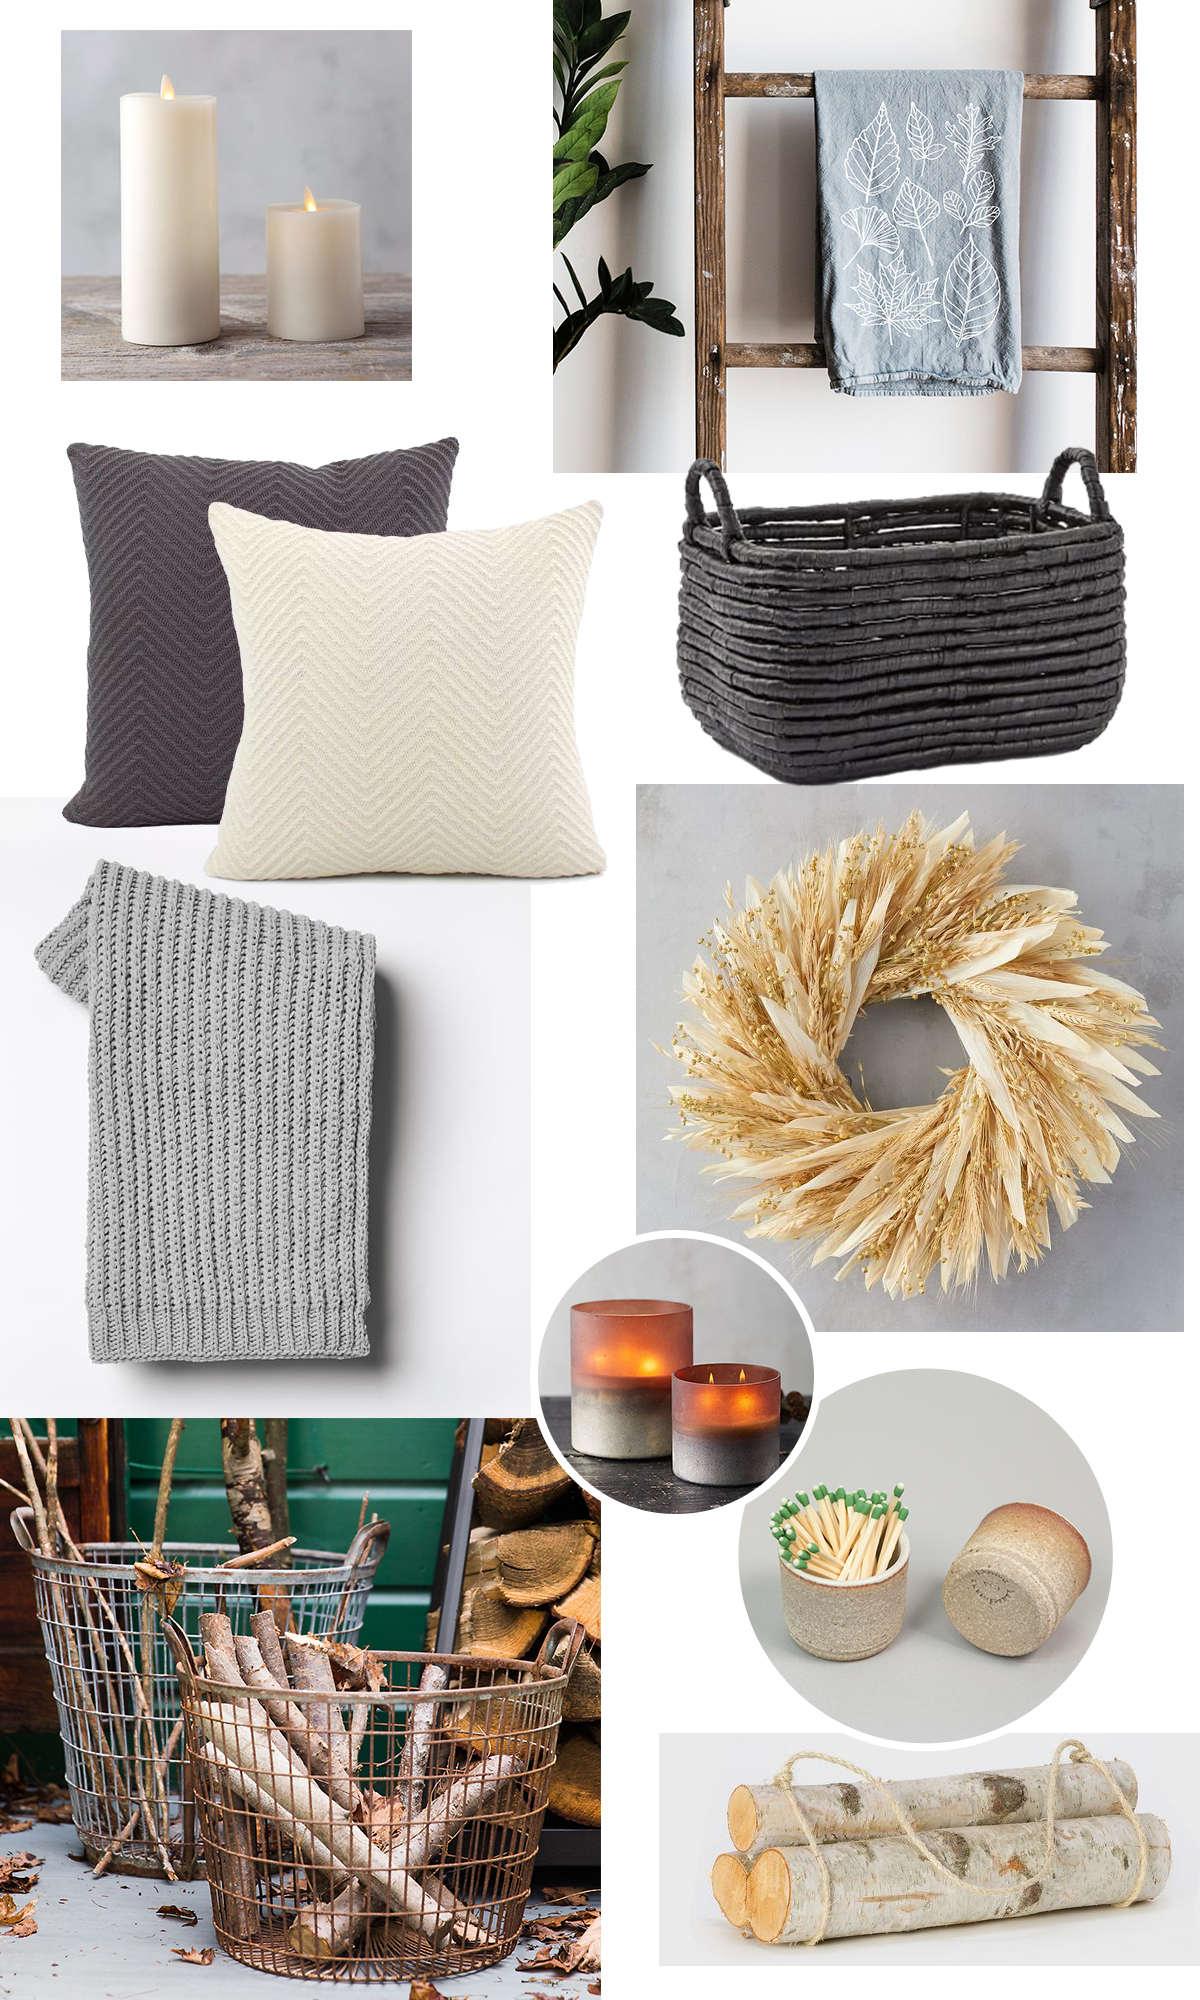 flame effect candles  |  tea towel  |  gray pillow cover  |  cream pillow cover  |  basket  |  throw  |  wreath  |  pumpkin scented candle  |  wire basket  |  match striker  |  birch log bundle